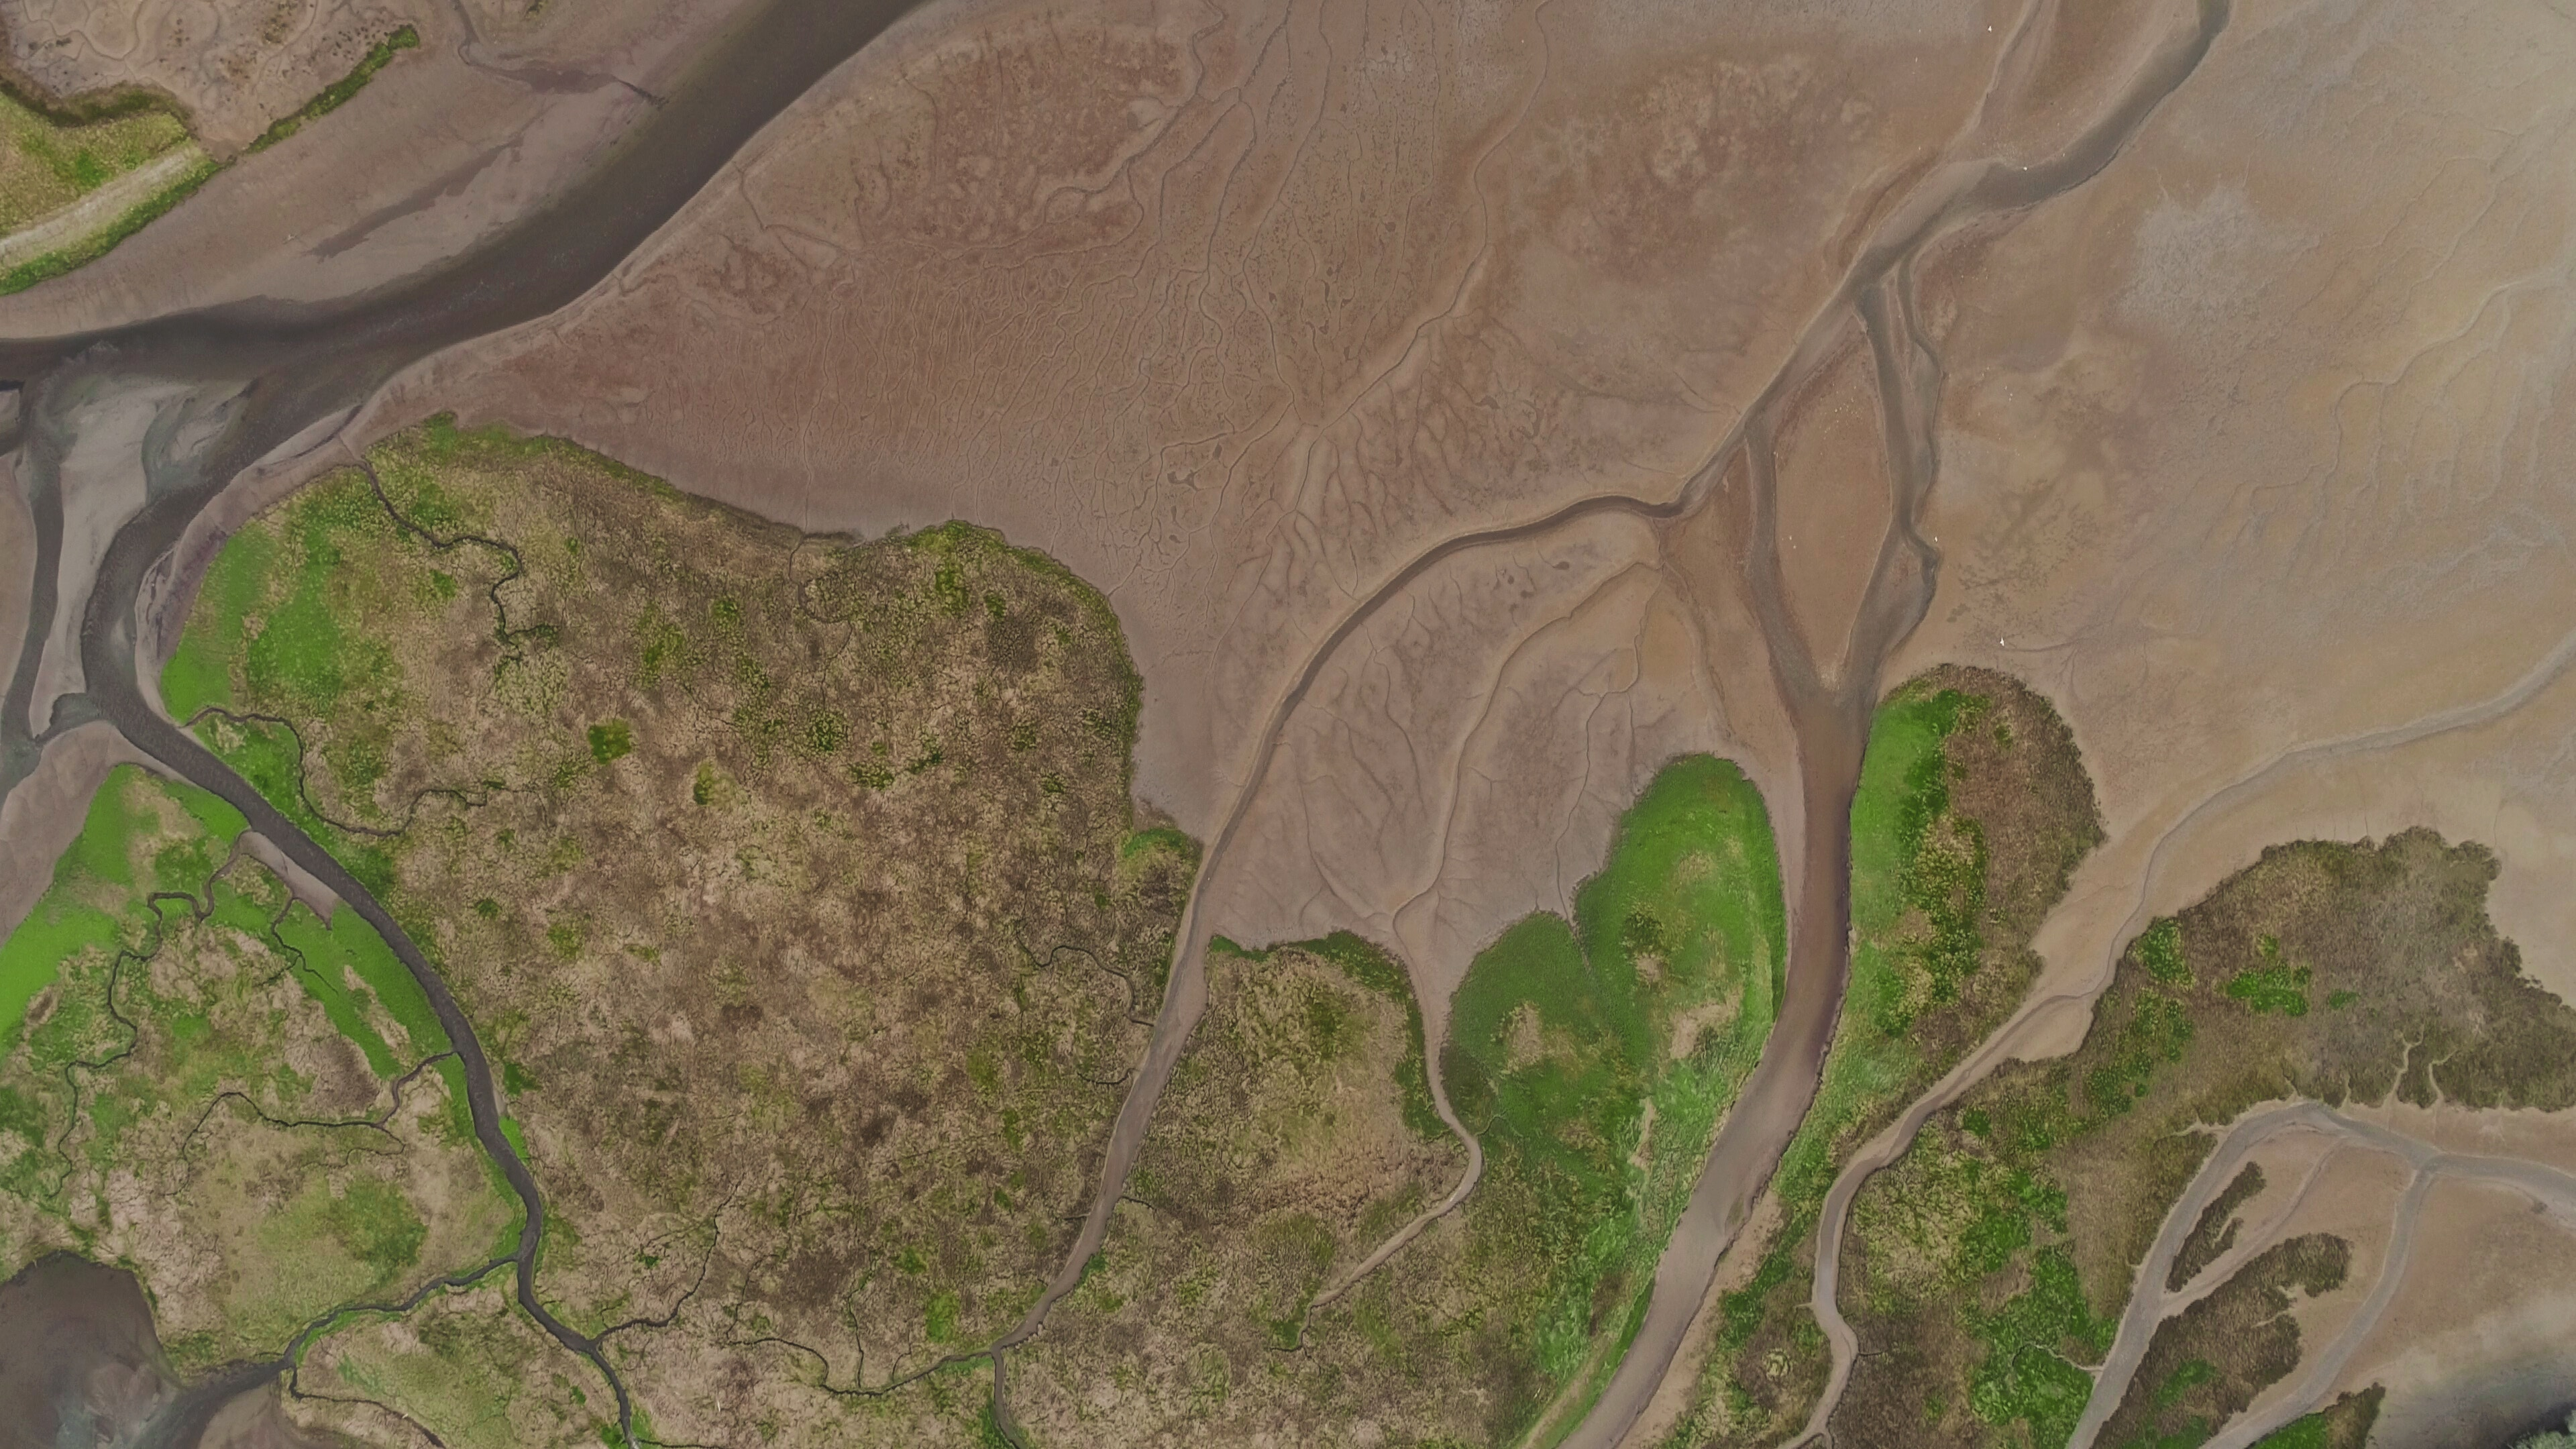 Aerial view of landscape.